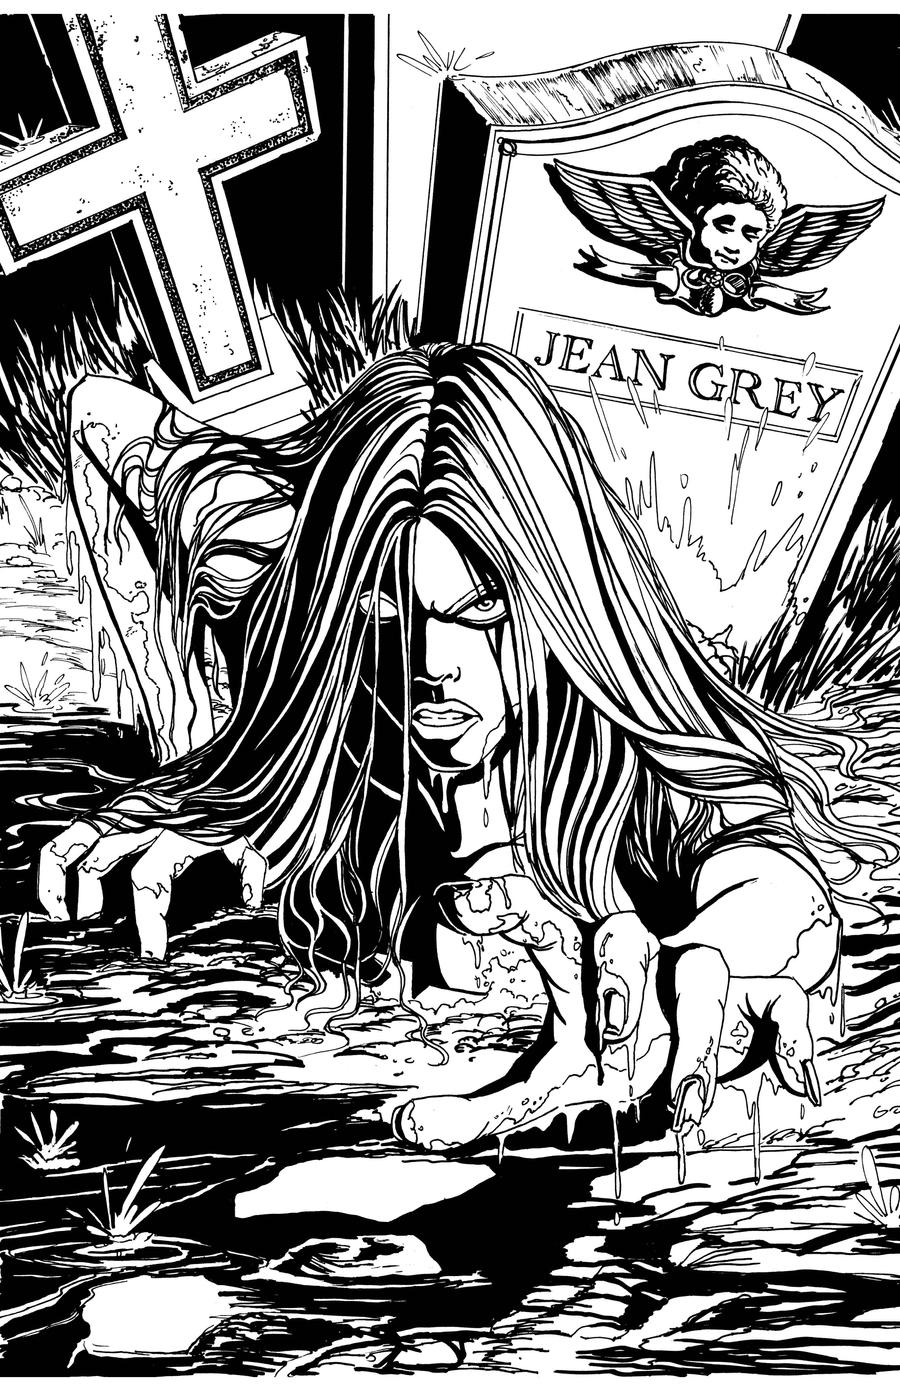 Jean Grey/Resurrection Man INKS by Theamat